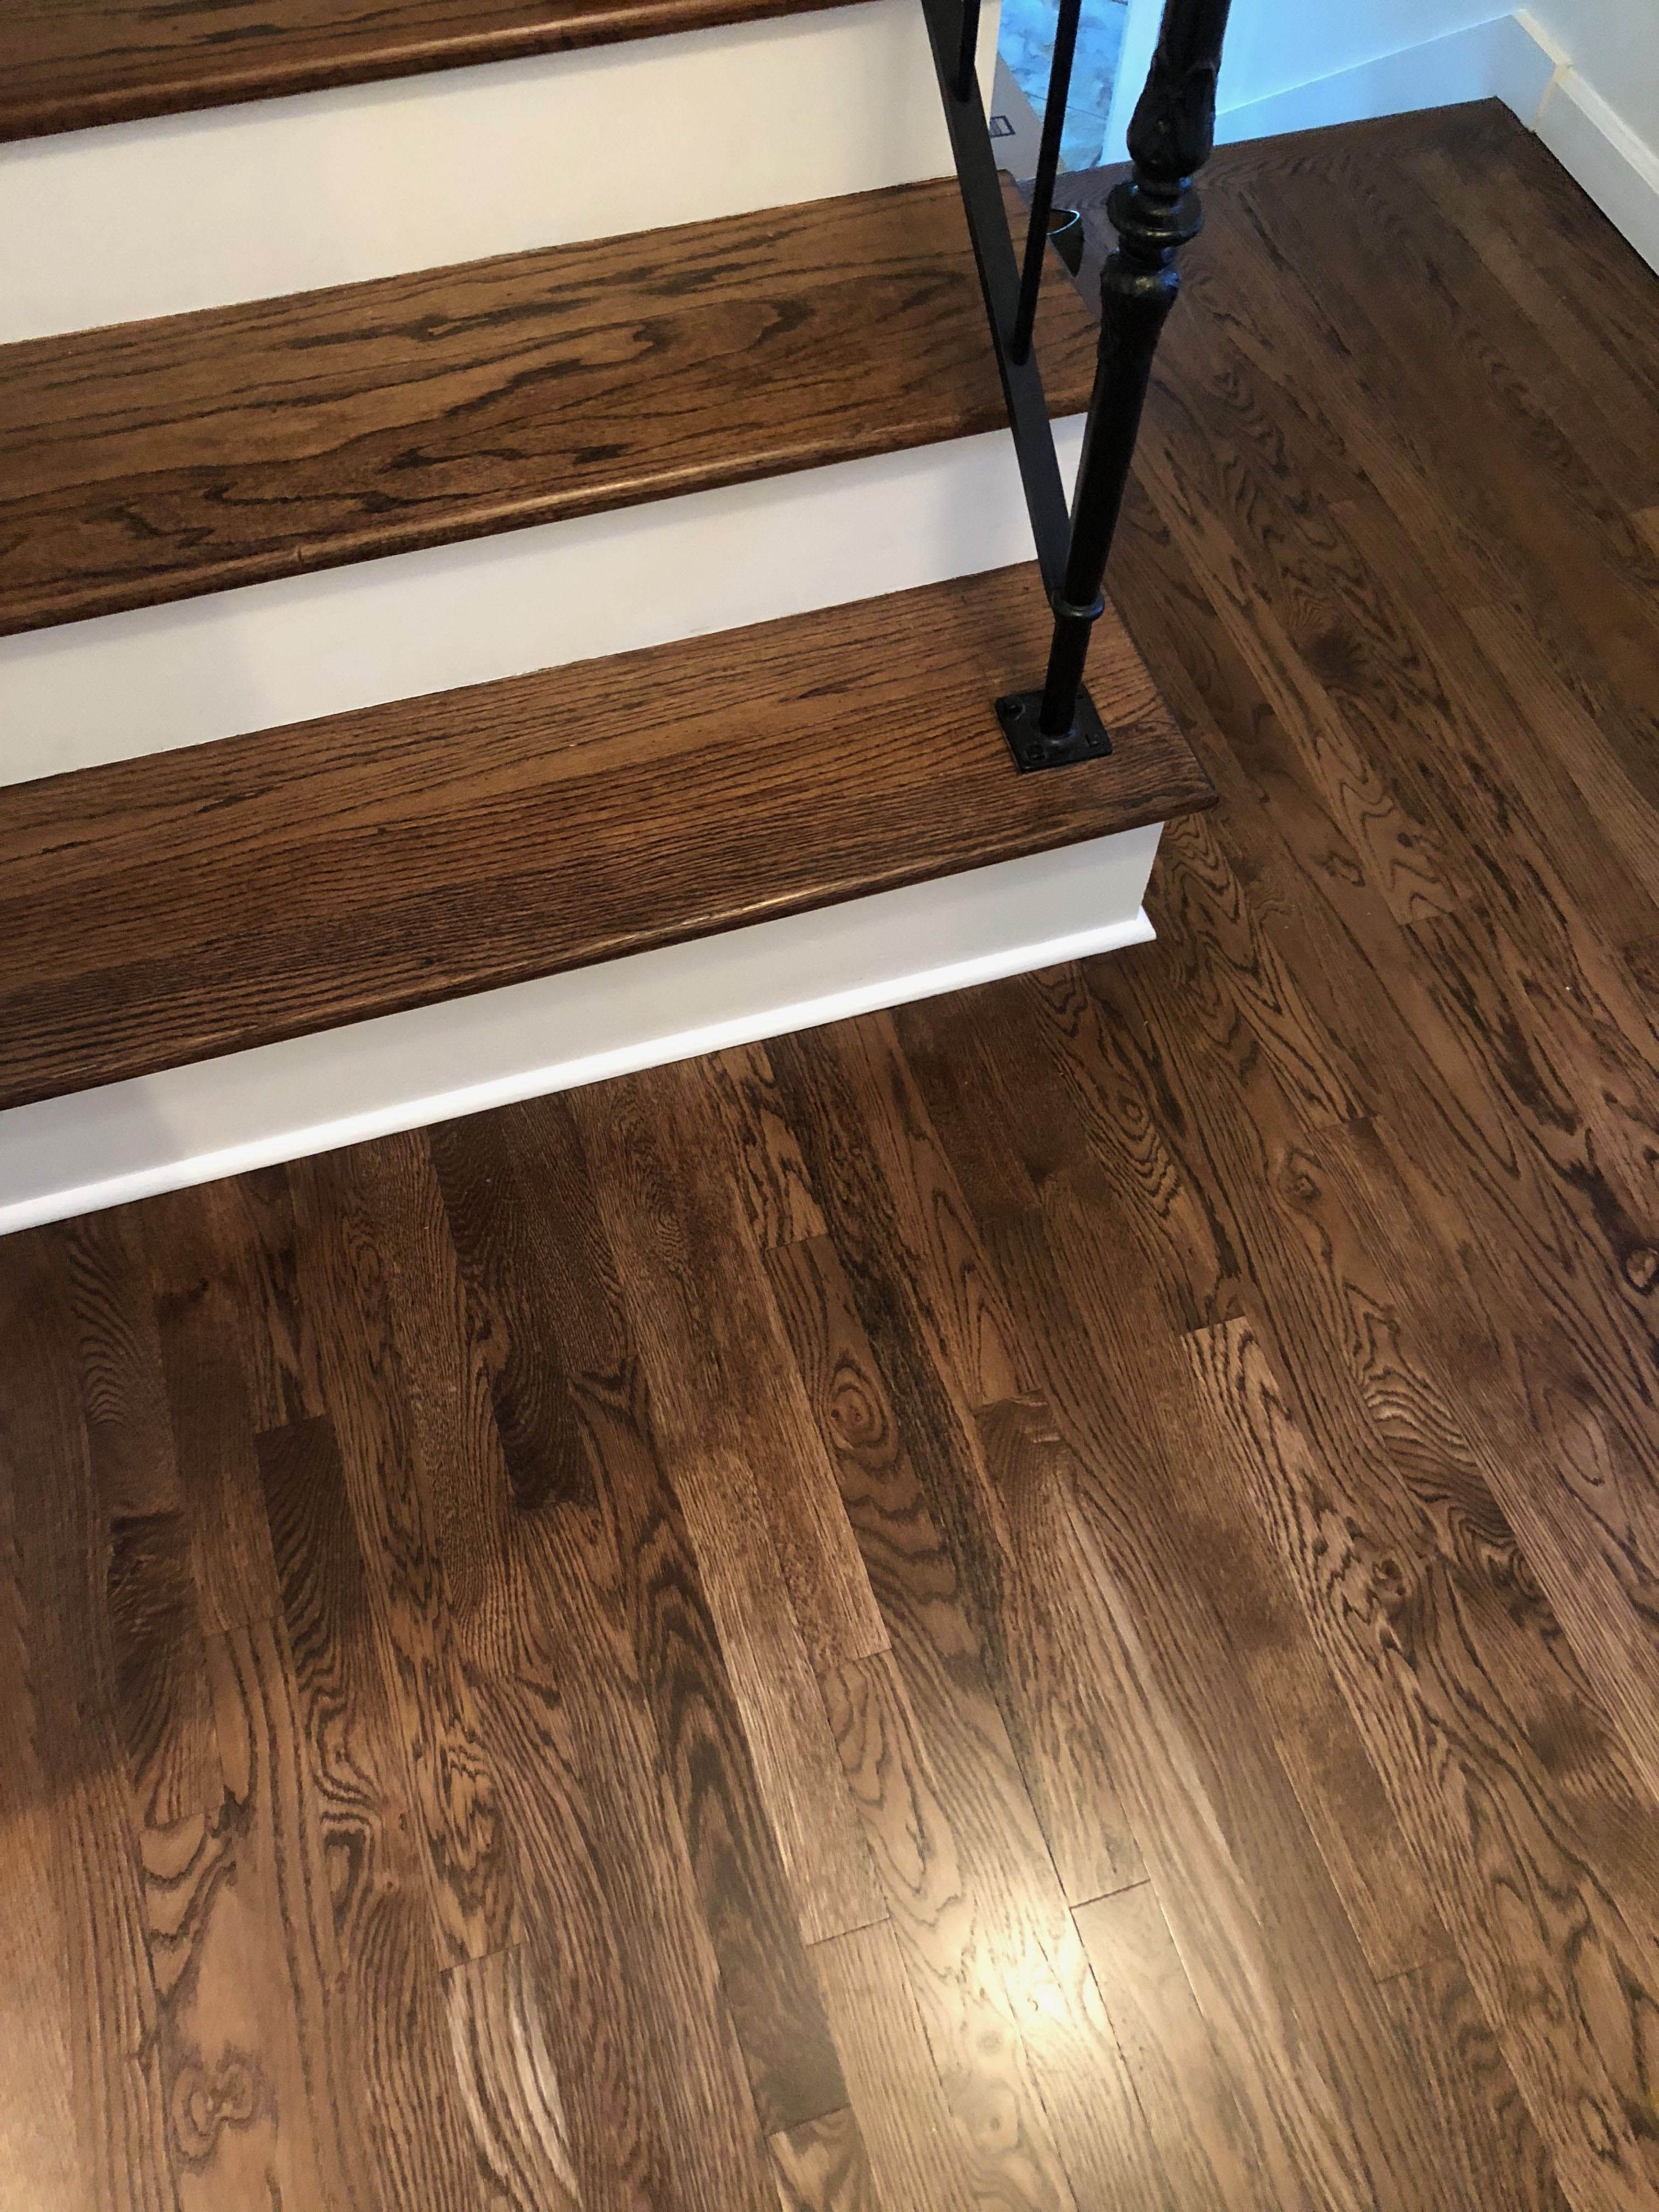 Should I Put In A Hard Wood Floor In My Home Kitchen Wood Floor Colors Staining Wood Floors Wood Floor Stain Colors